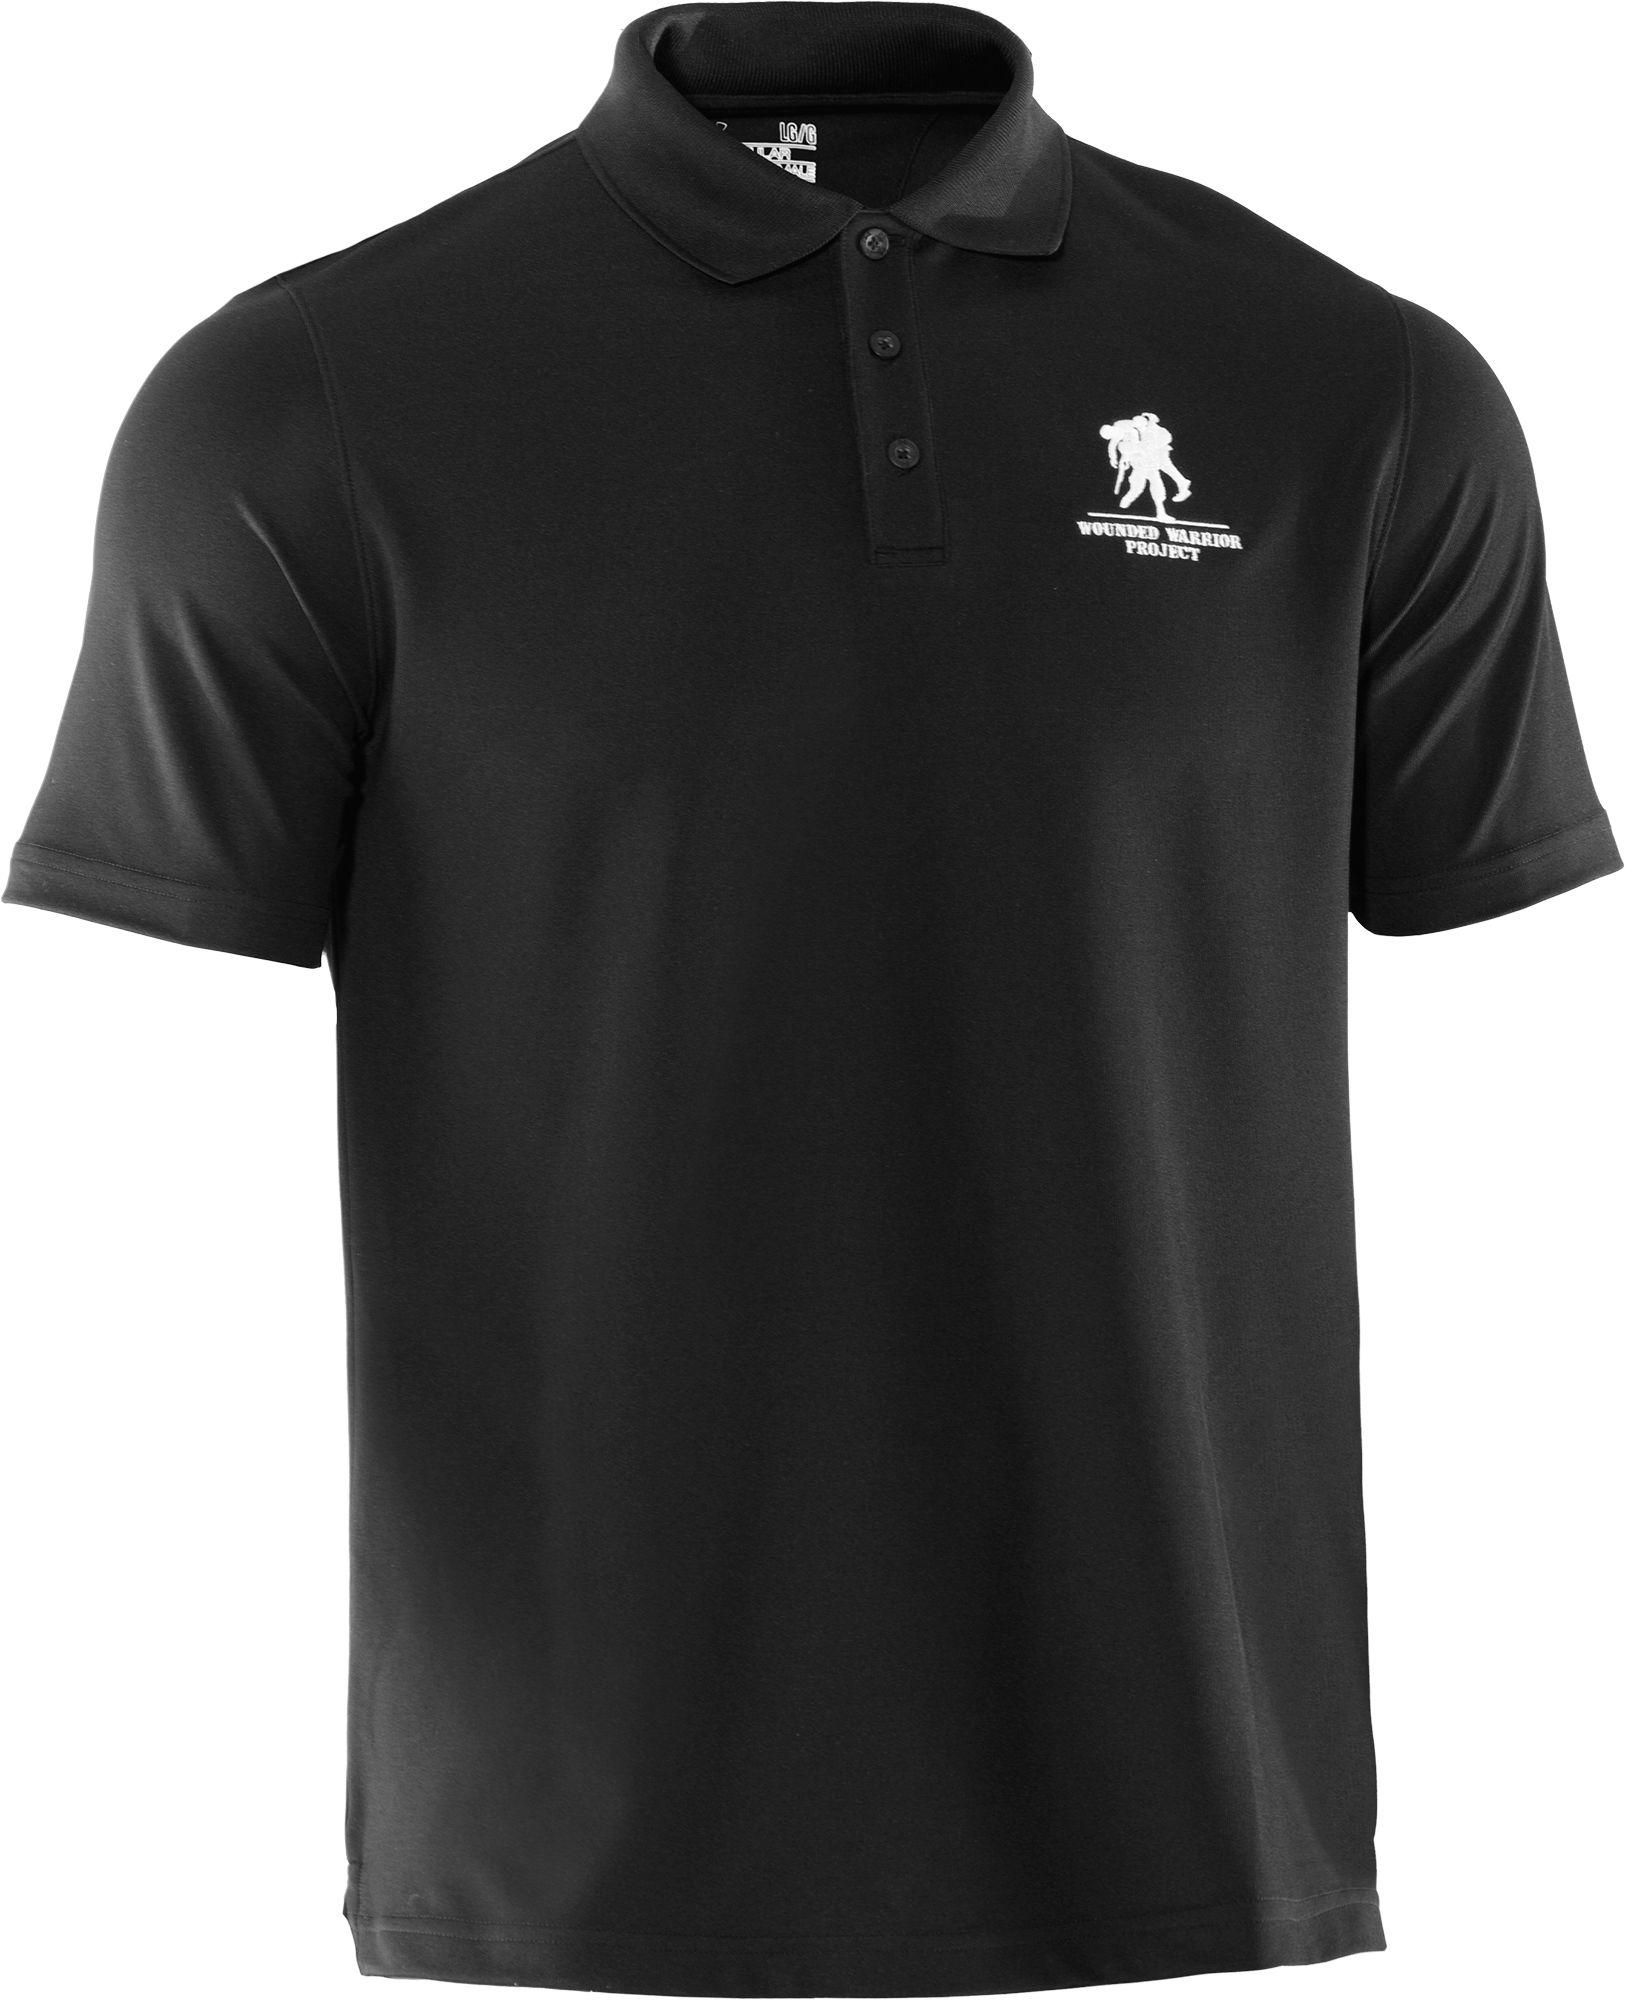 985c3499 Under Armour - Black Wounded Warrior Project Performance Polo Shirt for Men  - Lyst